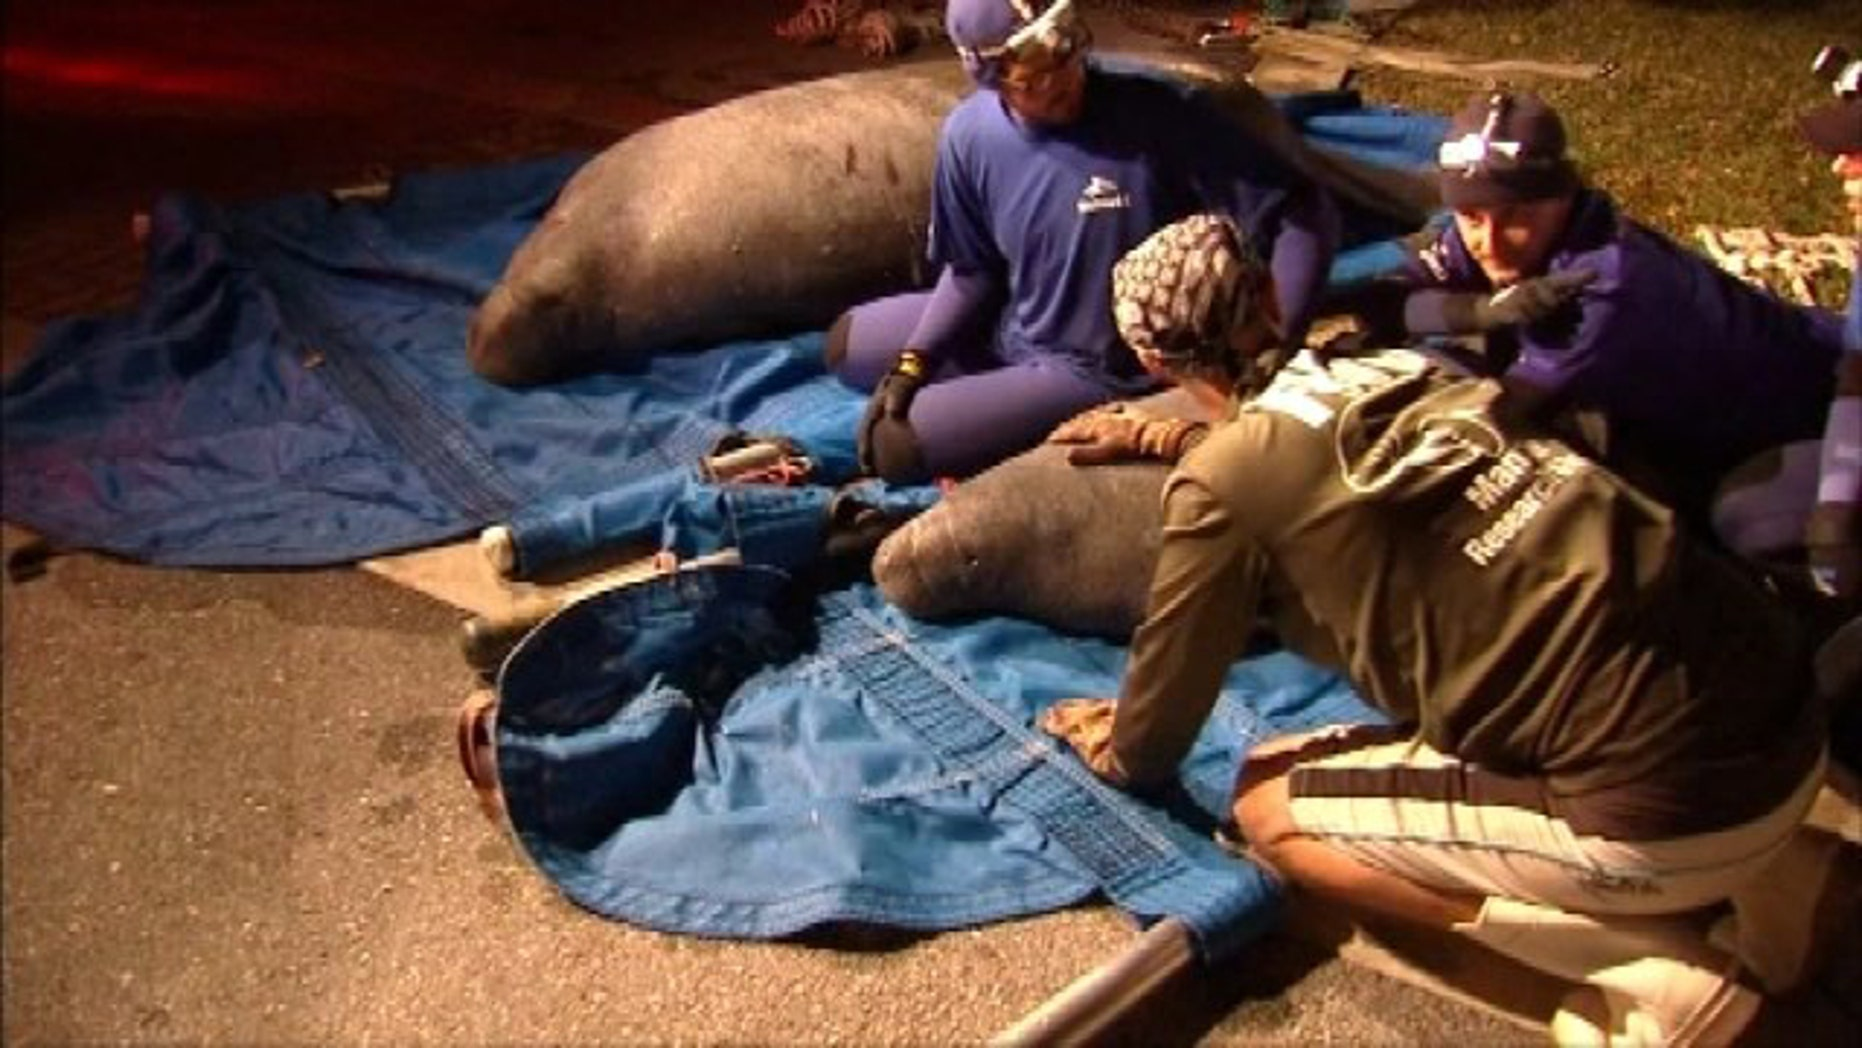 Feb. 23, 2015: Rescue workers sit with two manatees freed from a drainage pipe in Satellite Beach, Fla. (Courtesy MyFoxOrlando.com)